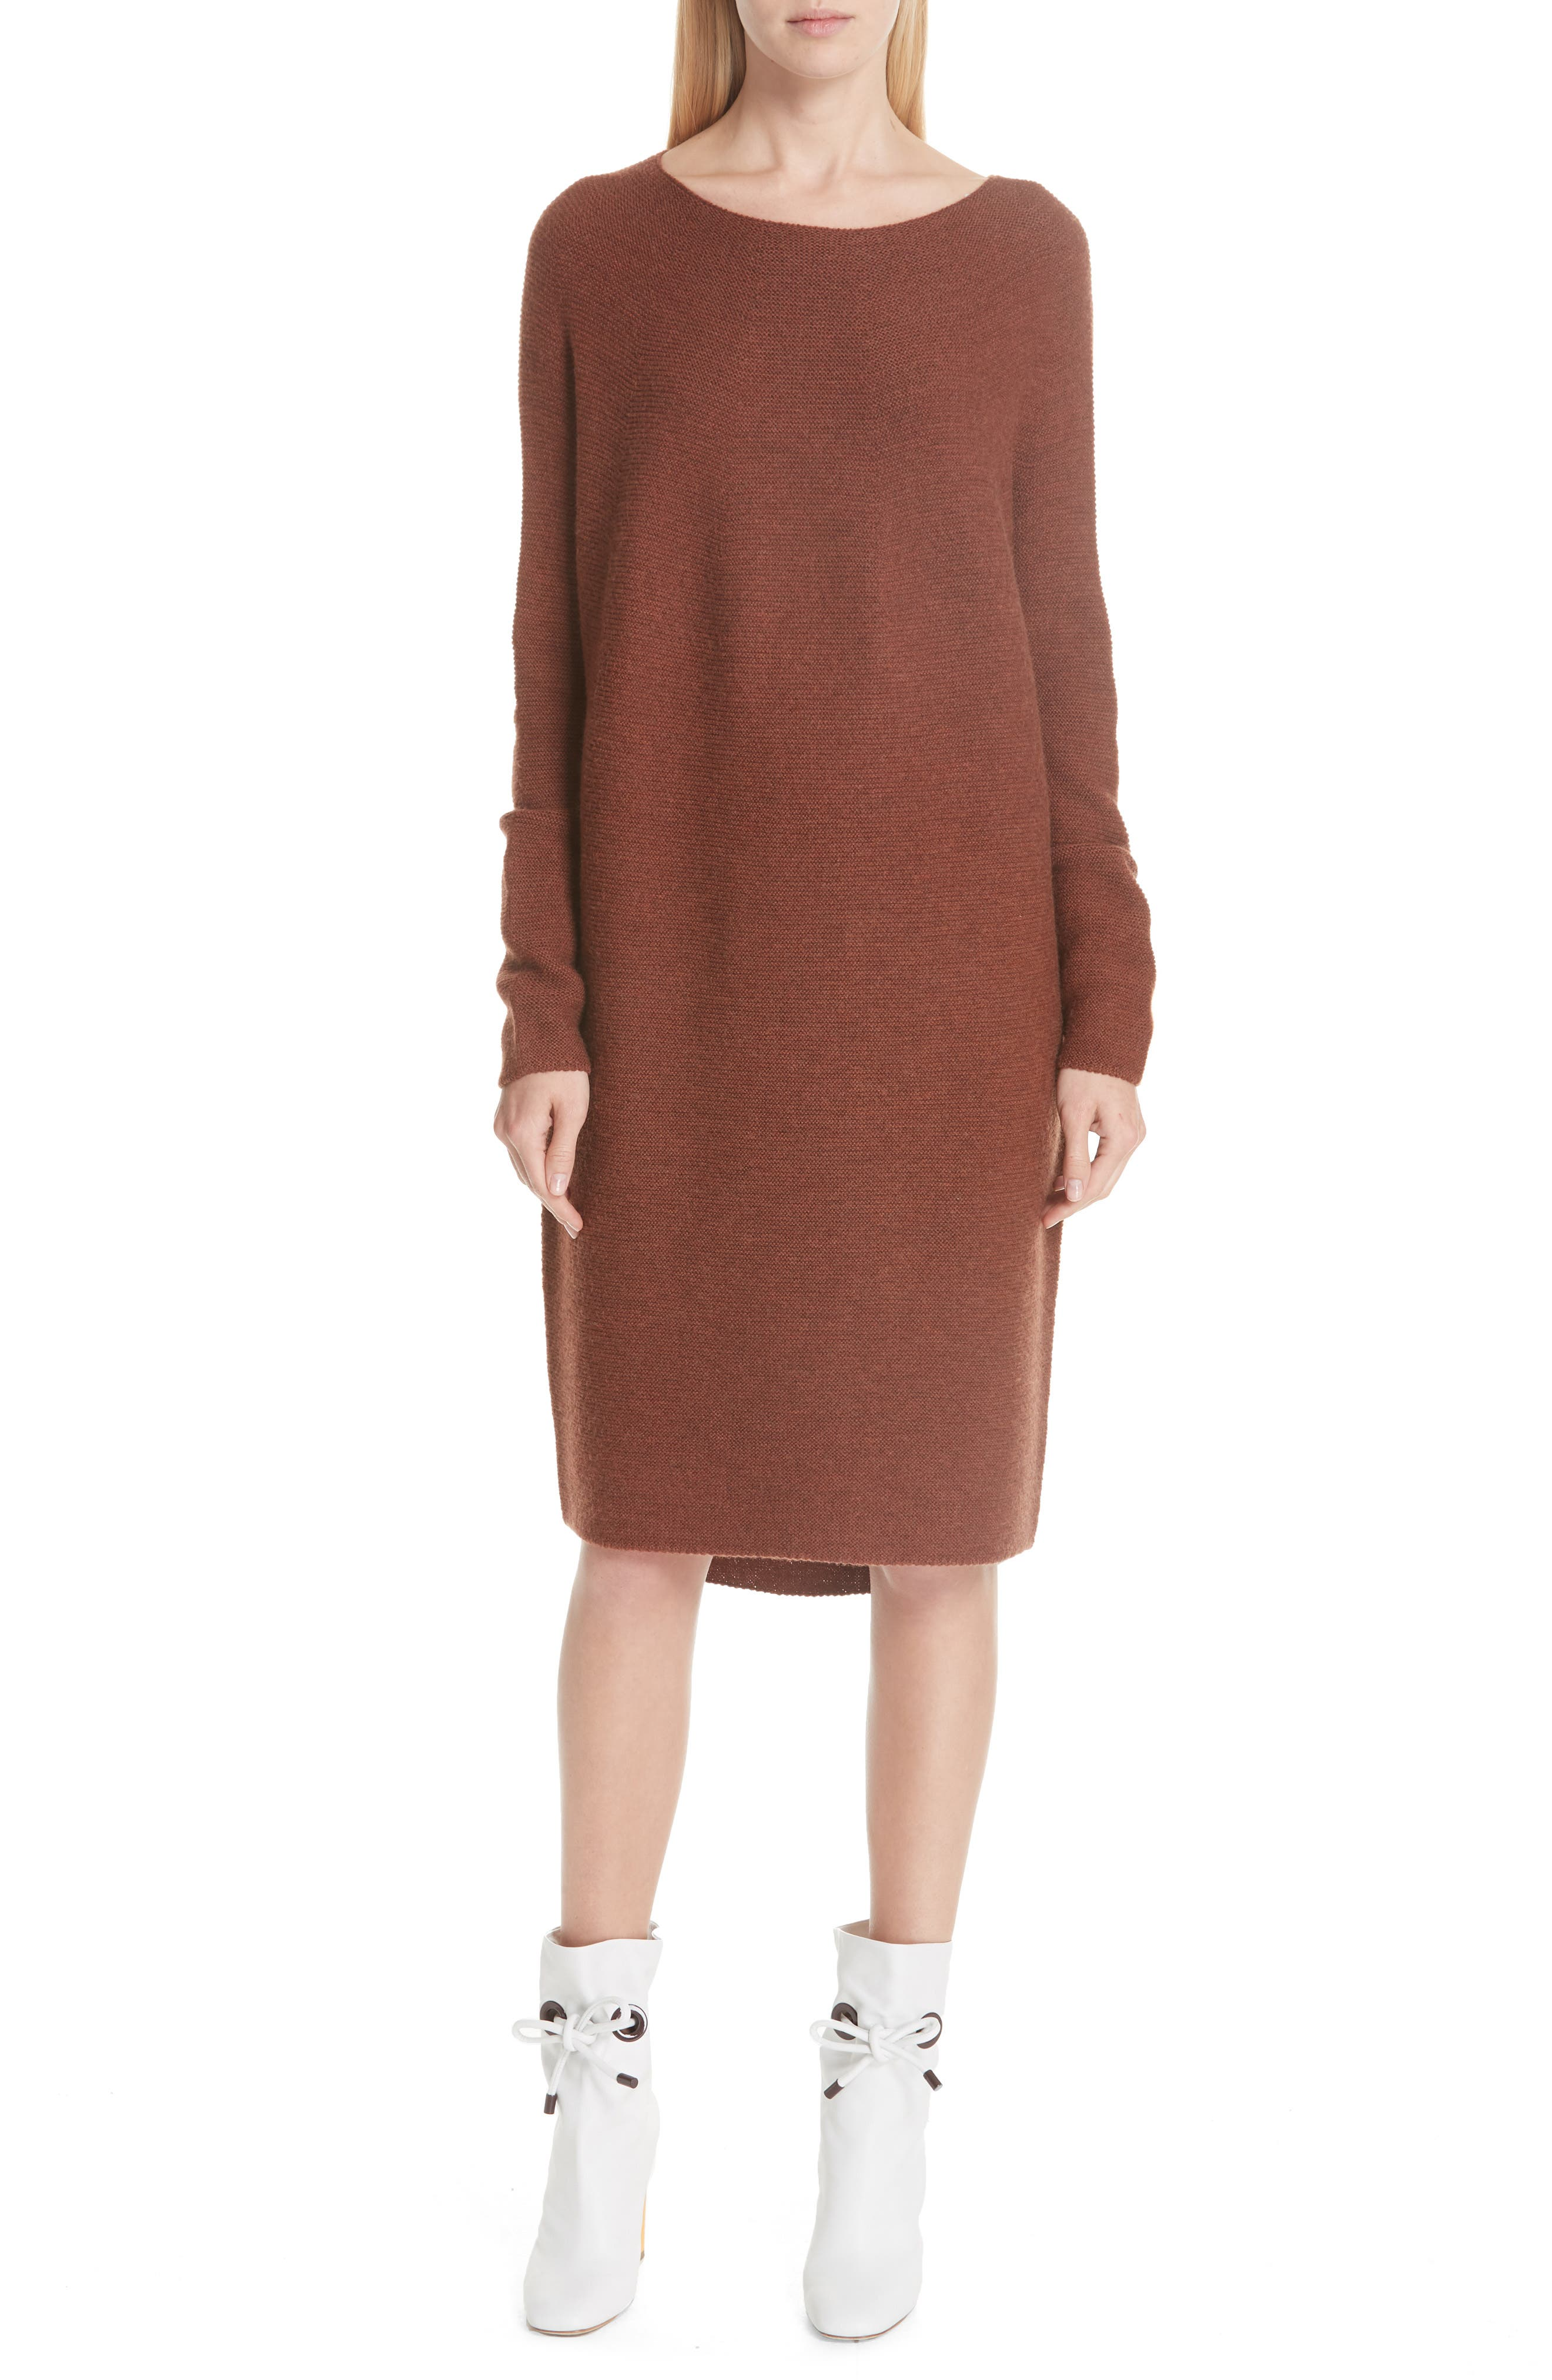 Christian Wijnants Dresses SWEATER DRESS